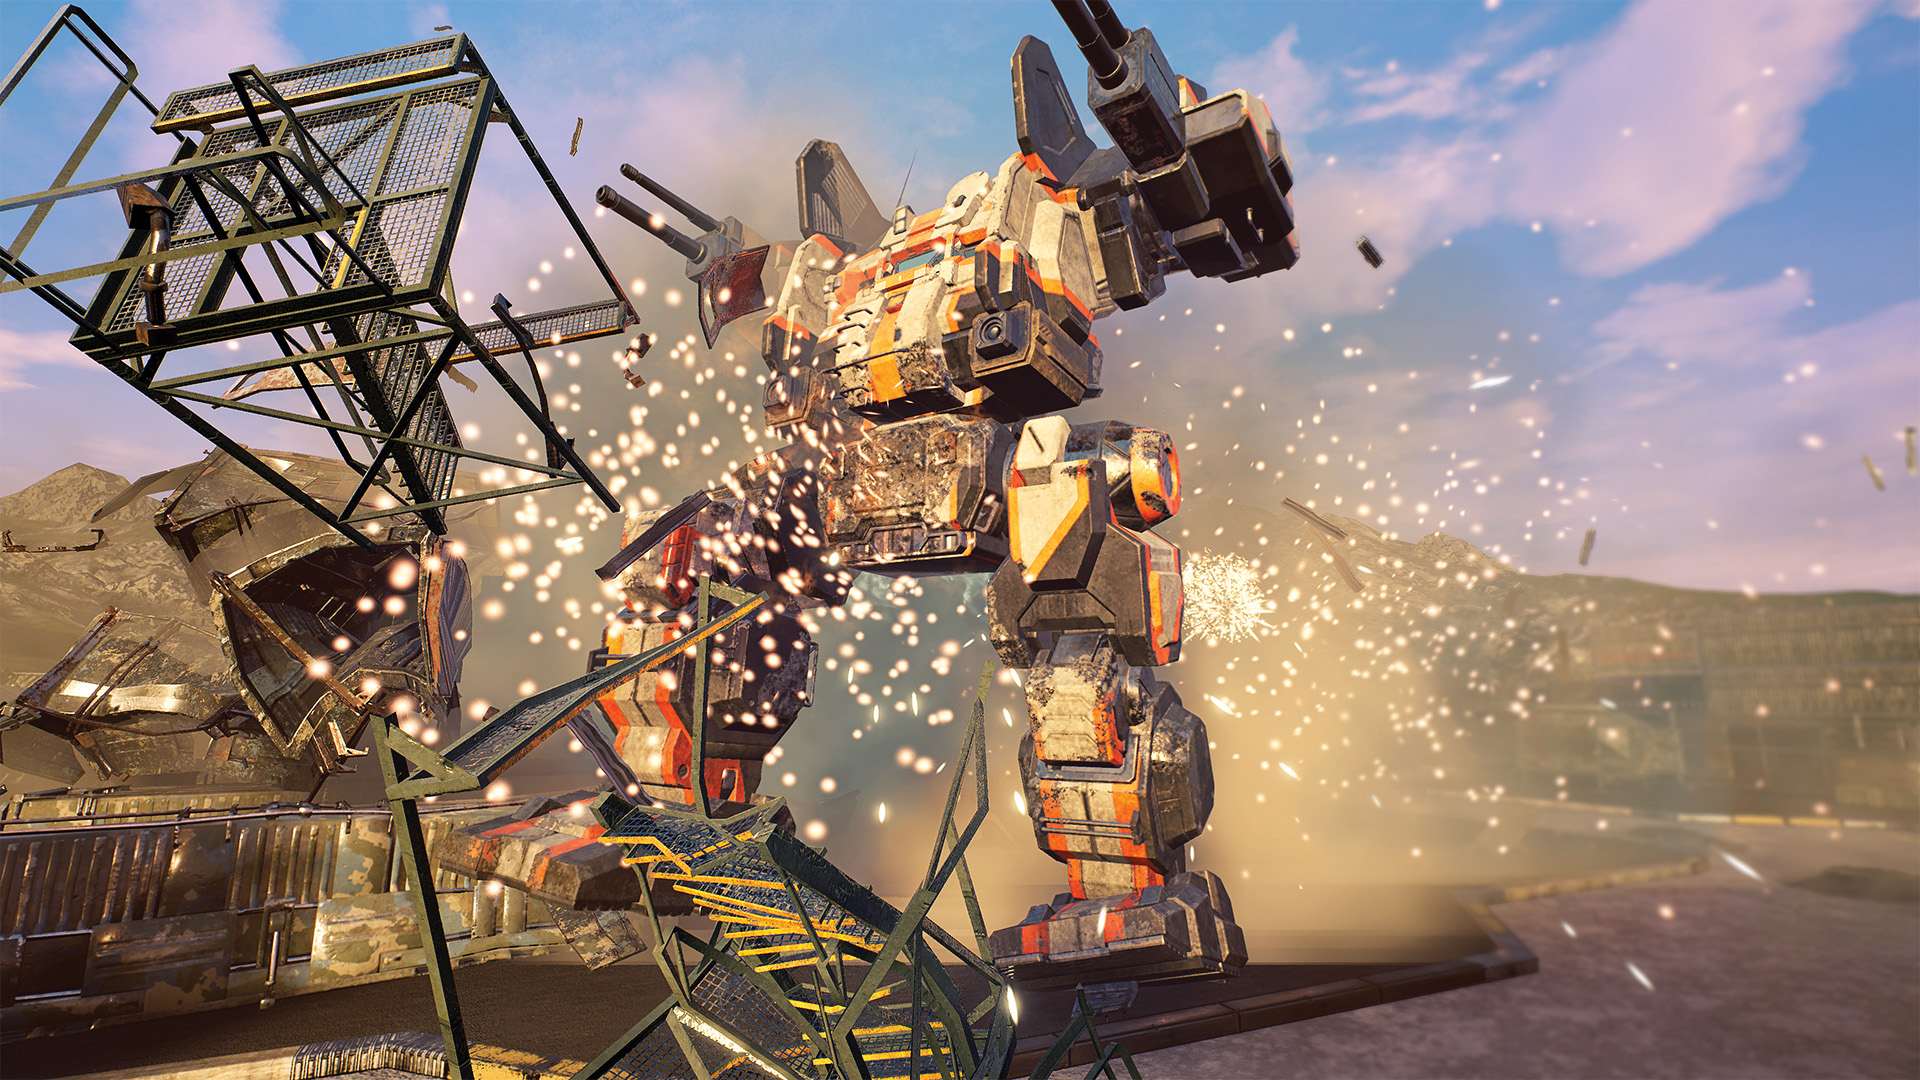 Despite weak AI, MechWarrior 5 is shaping up to be the mech game I've always wanted